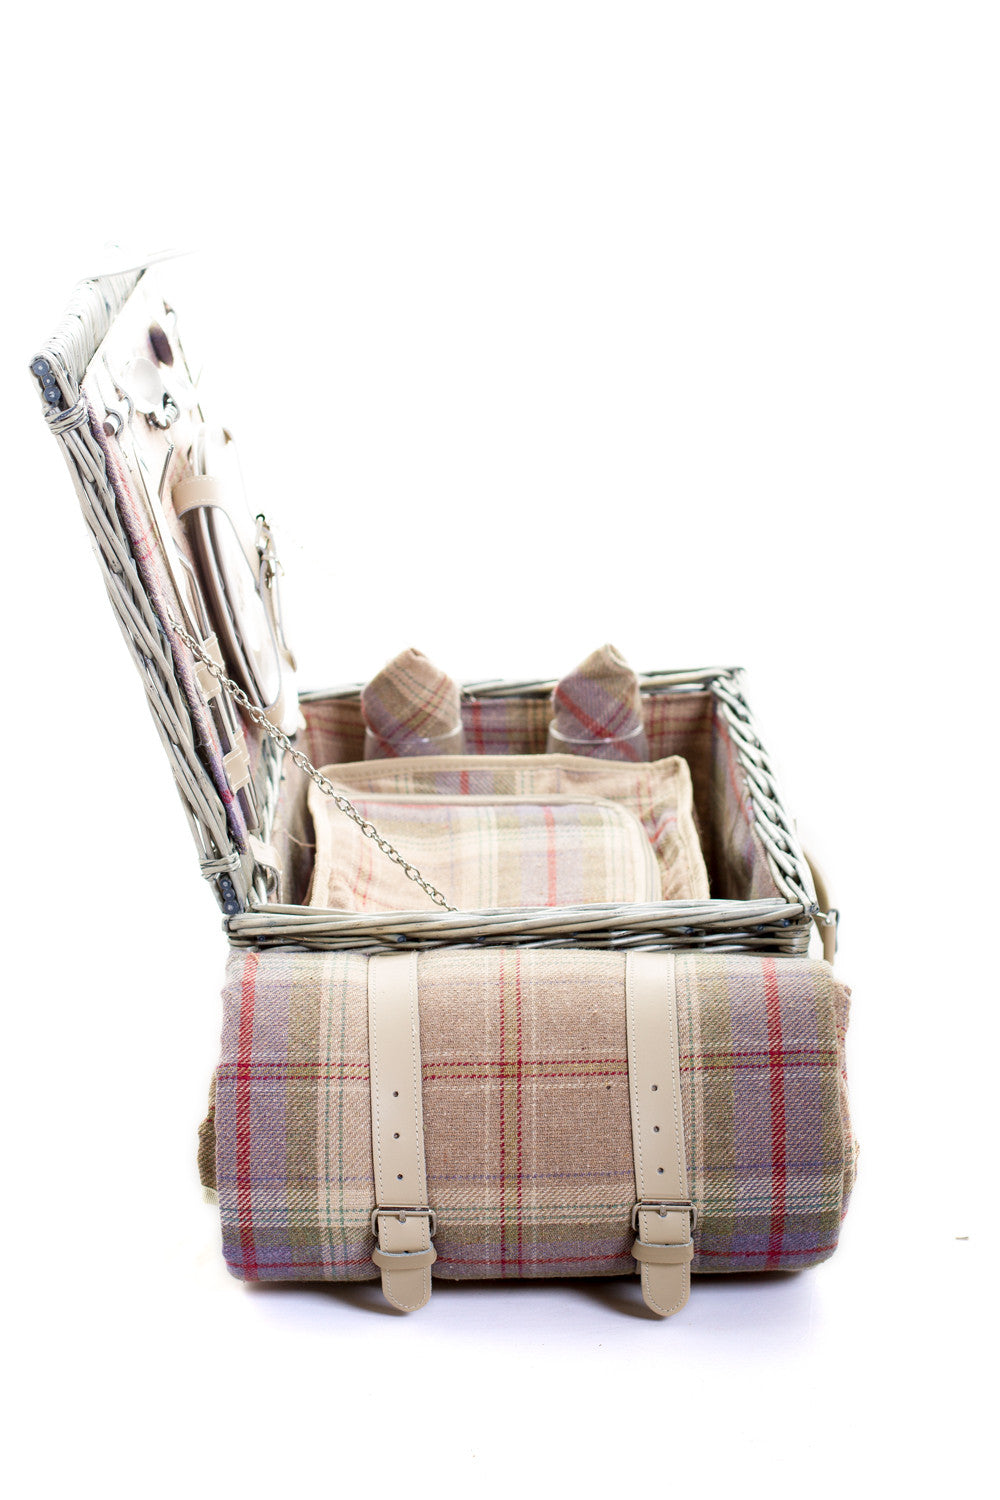 Exclusive Grey tartan lightweight two person wicker suitcase hamper | Quality | Willow | Real Leather | Glass | China plates | Stainless Steel Cutlery | Cooler Bag | Blanket | Handle